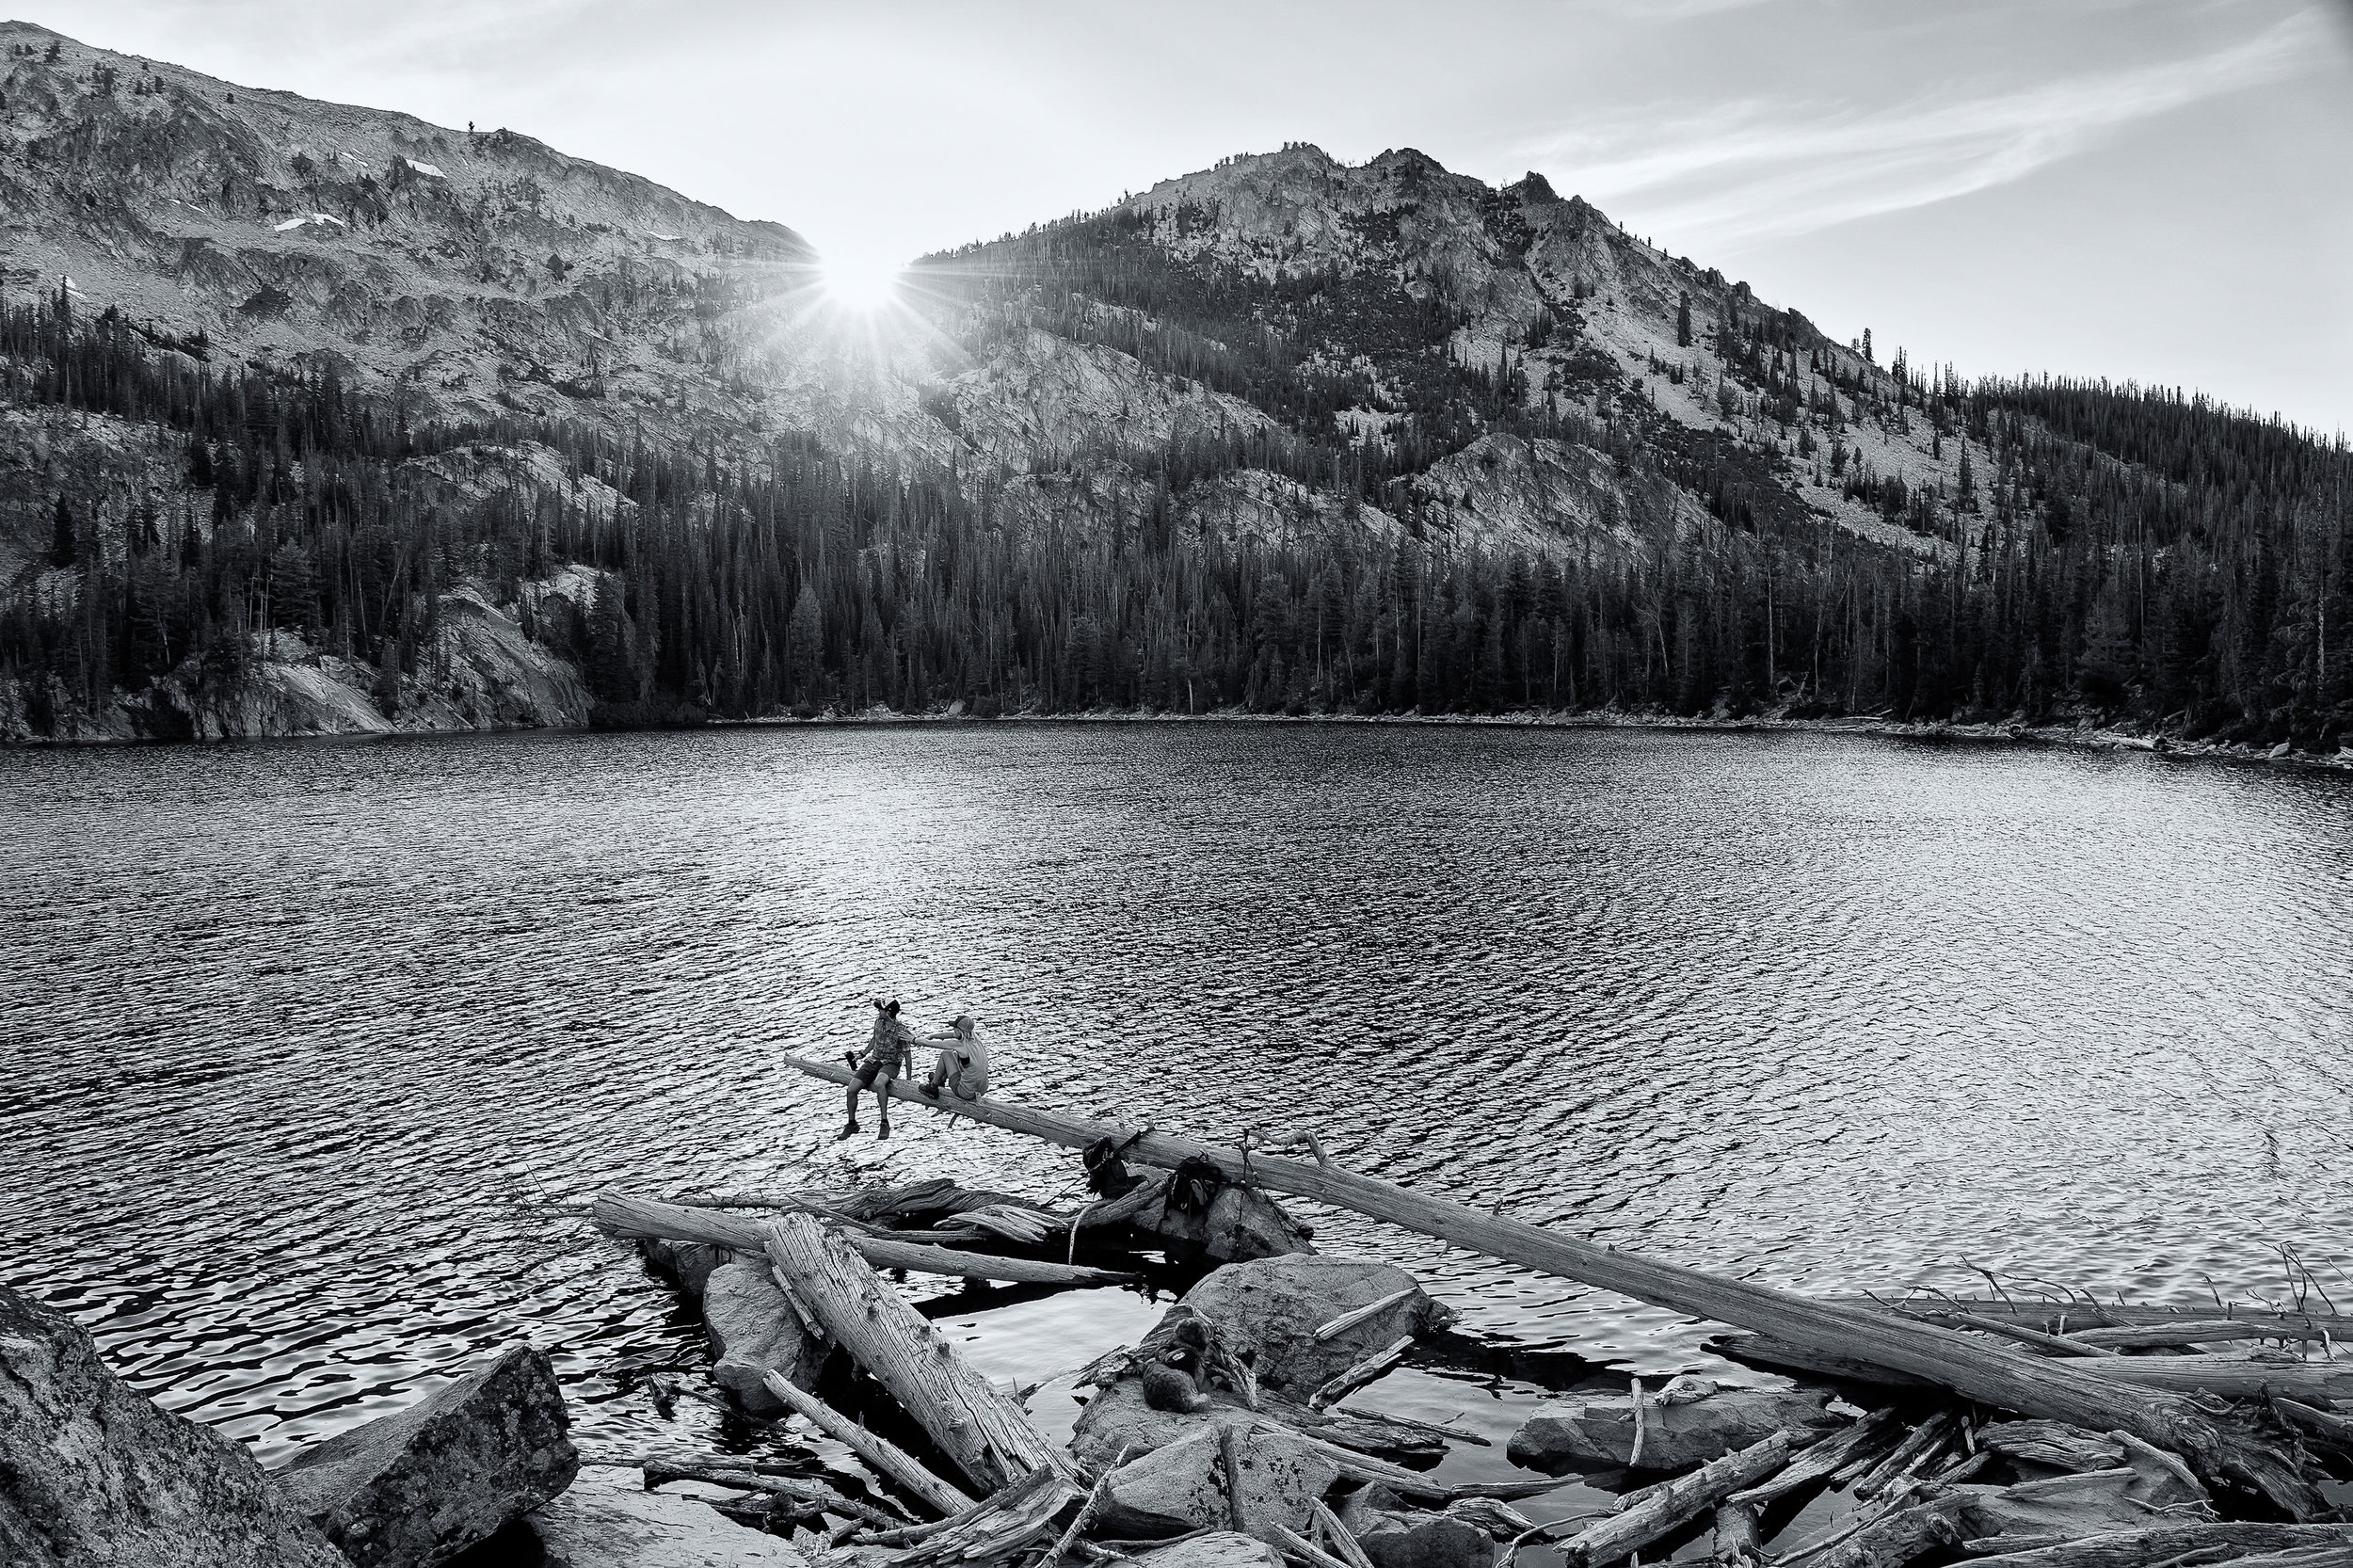 matera_outdoor_lifestyle_Idaho_Ketchum_hiking_DSC3984.jpg